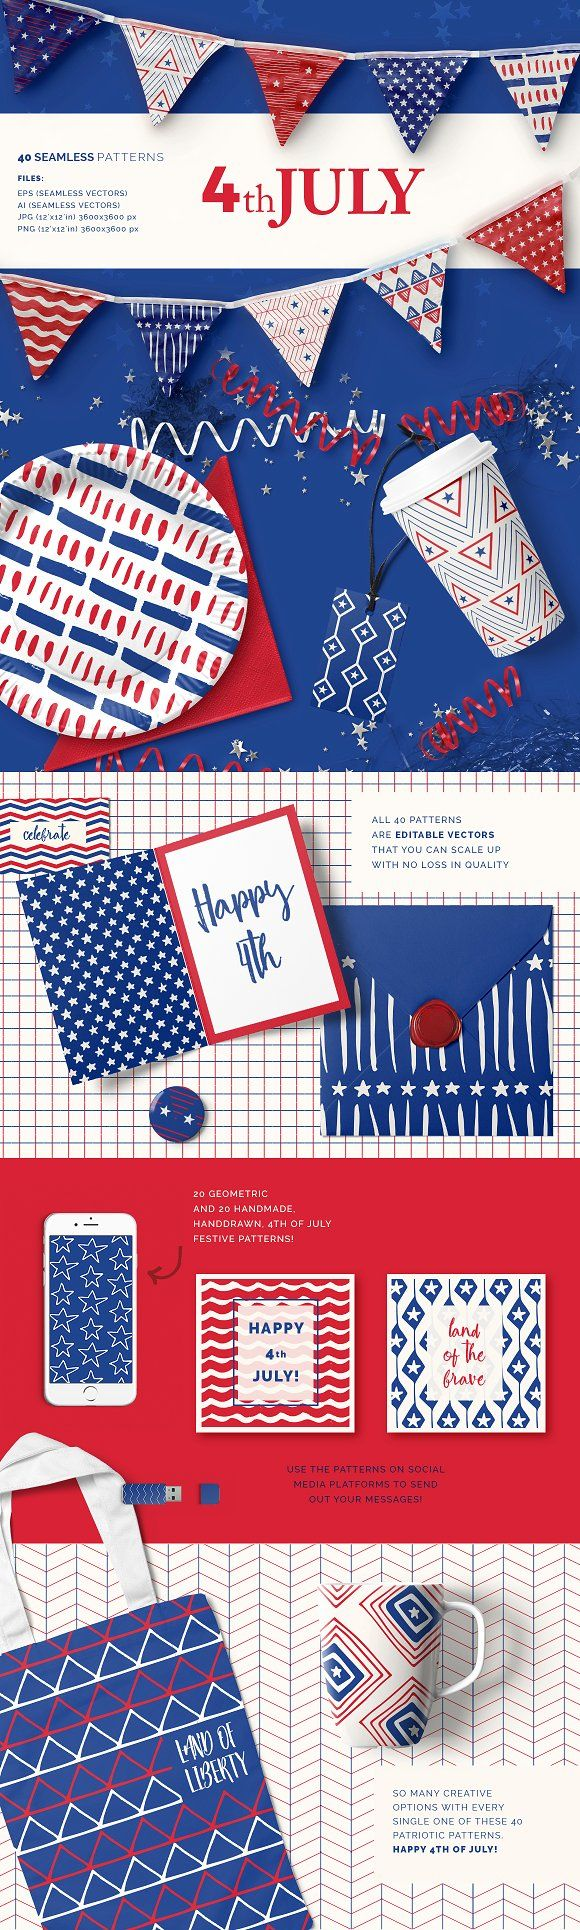 4th of July Patterns by Youandigraphics on @creativemarket